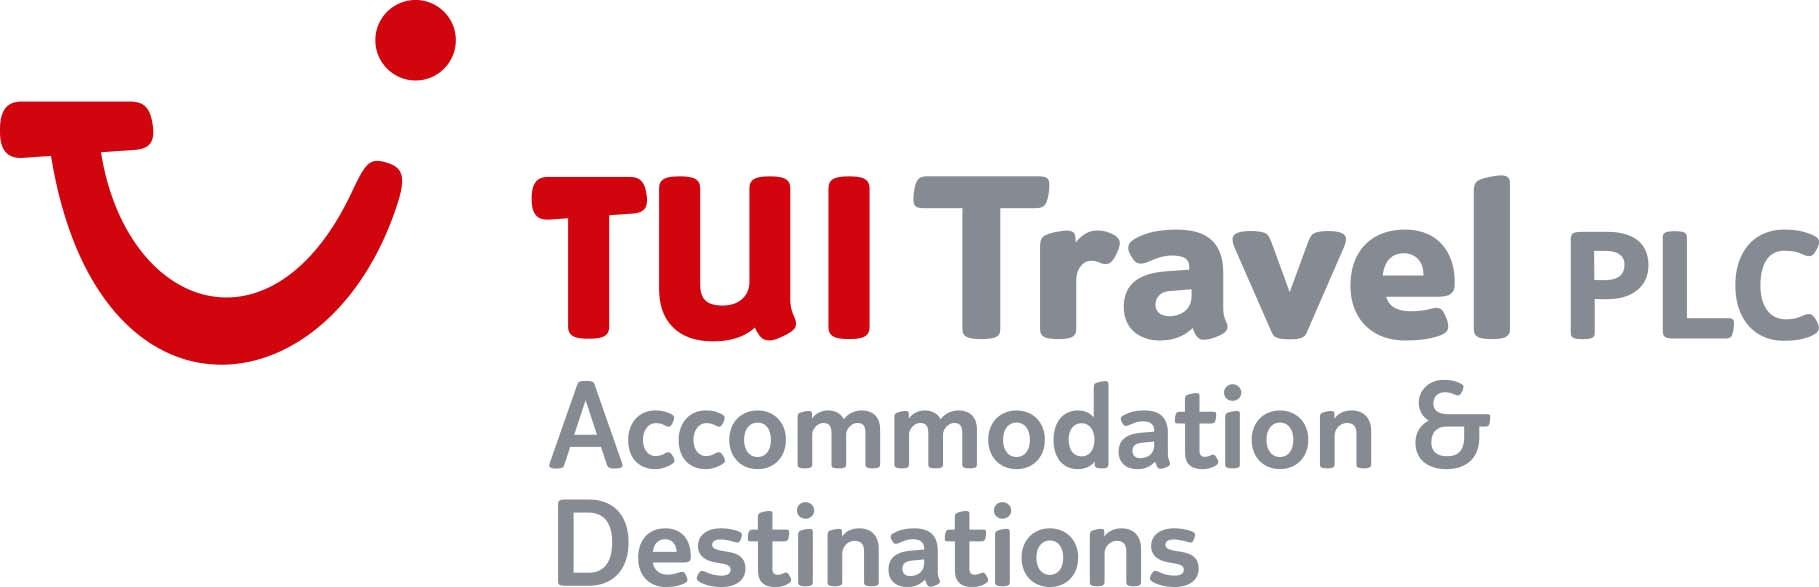 GoMarketing to Present Online Marketing Strategies to TUI Travel PLC Representatives on September 23, 2014 in Pasadena, CA